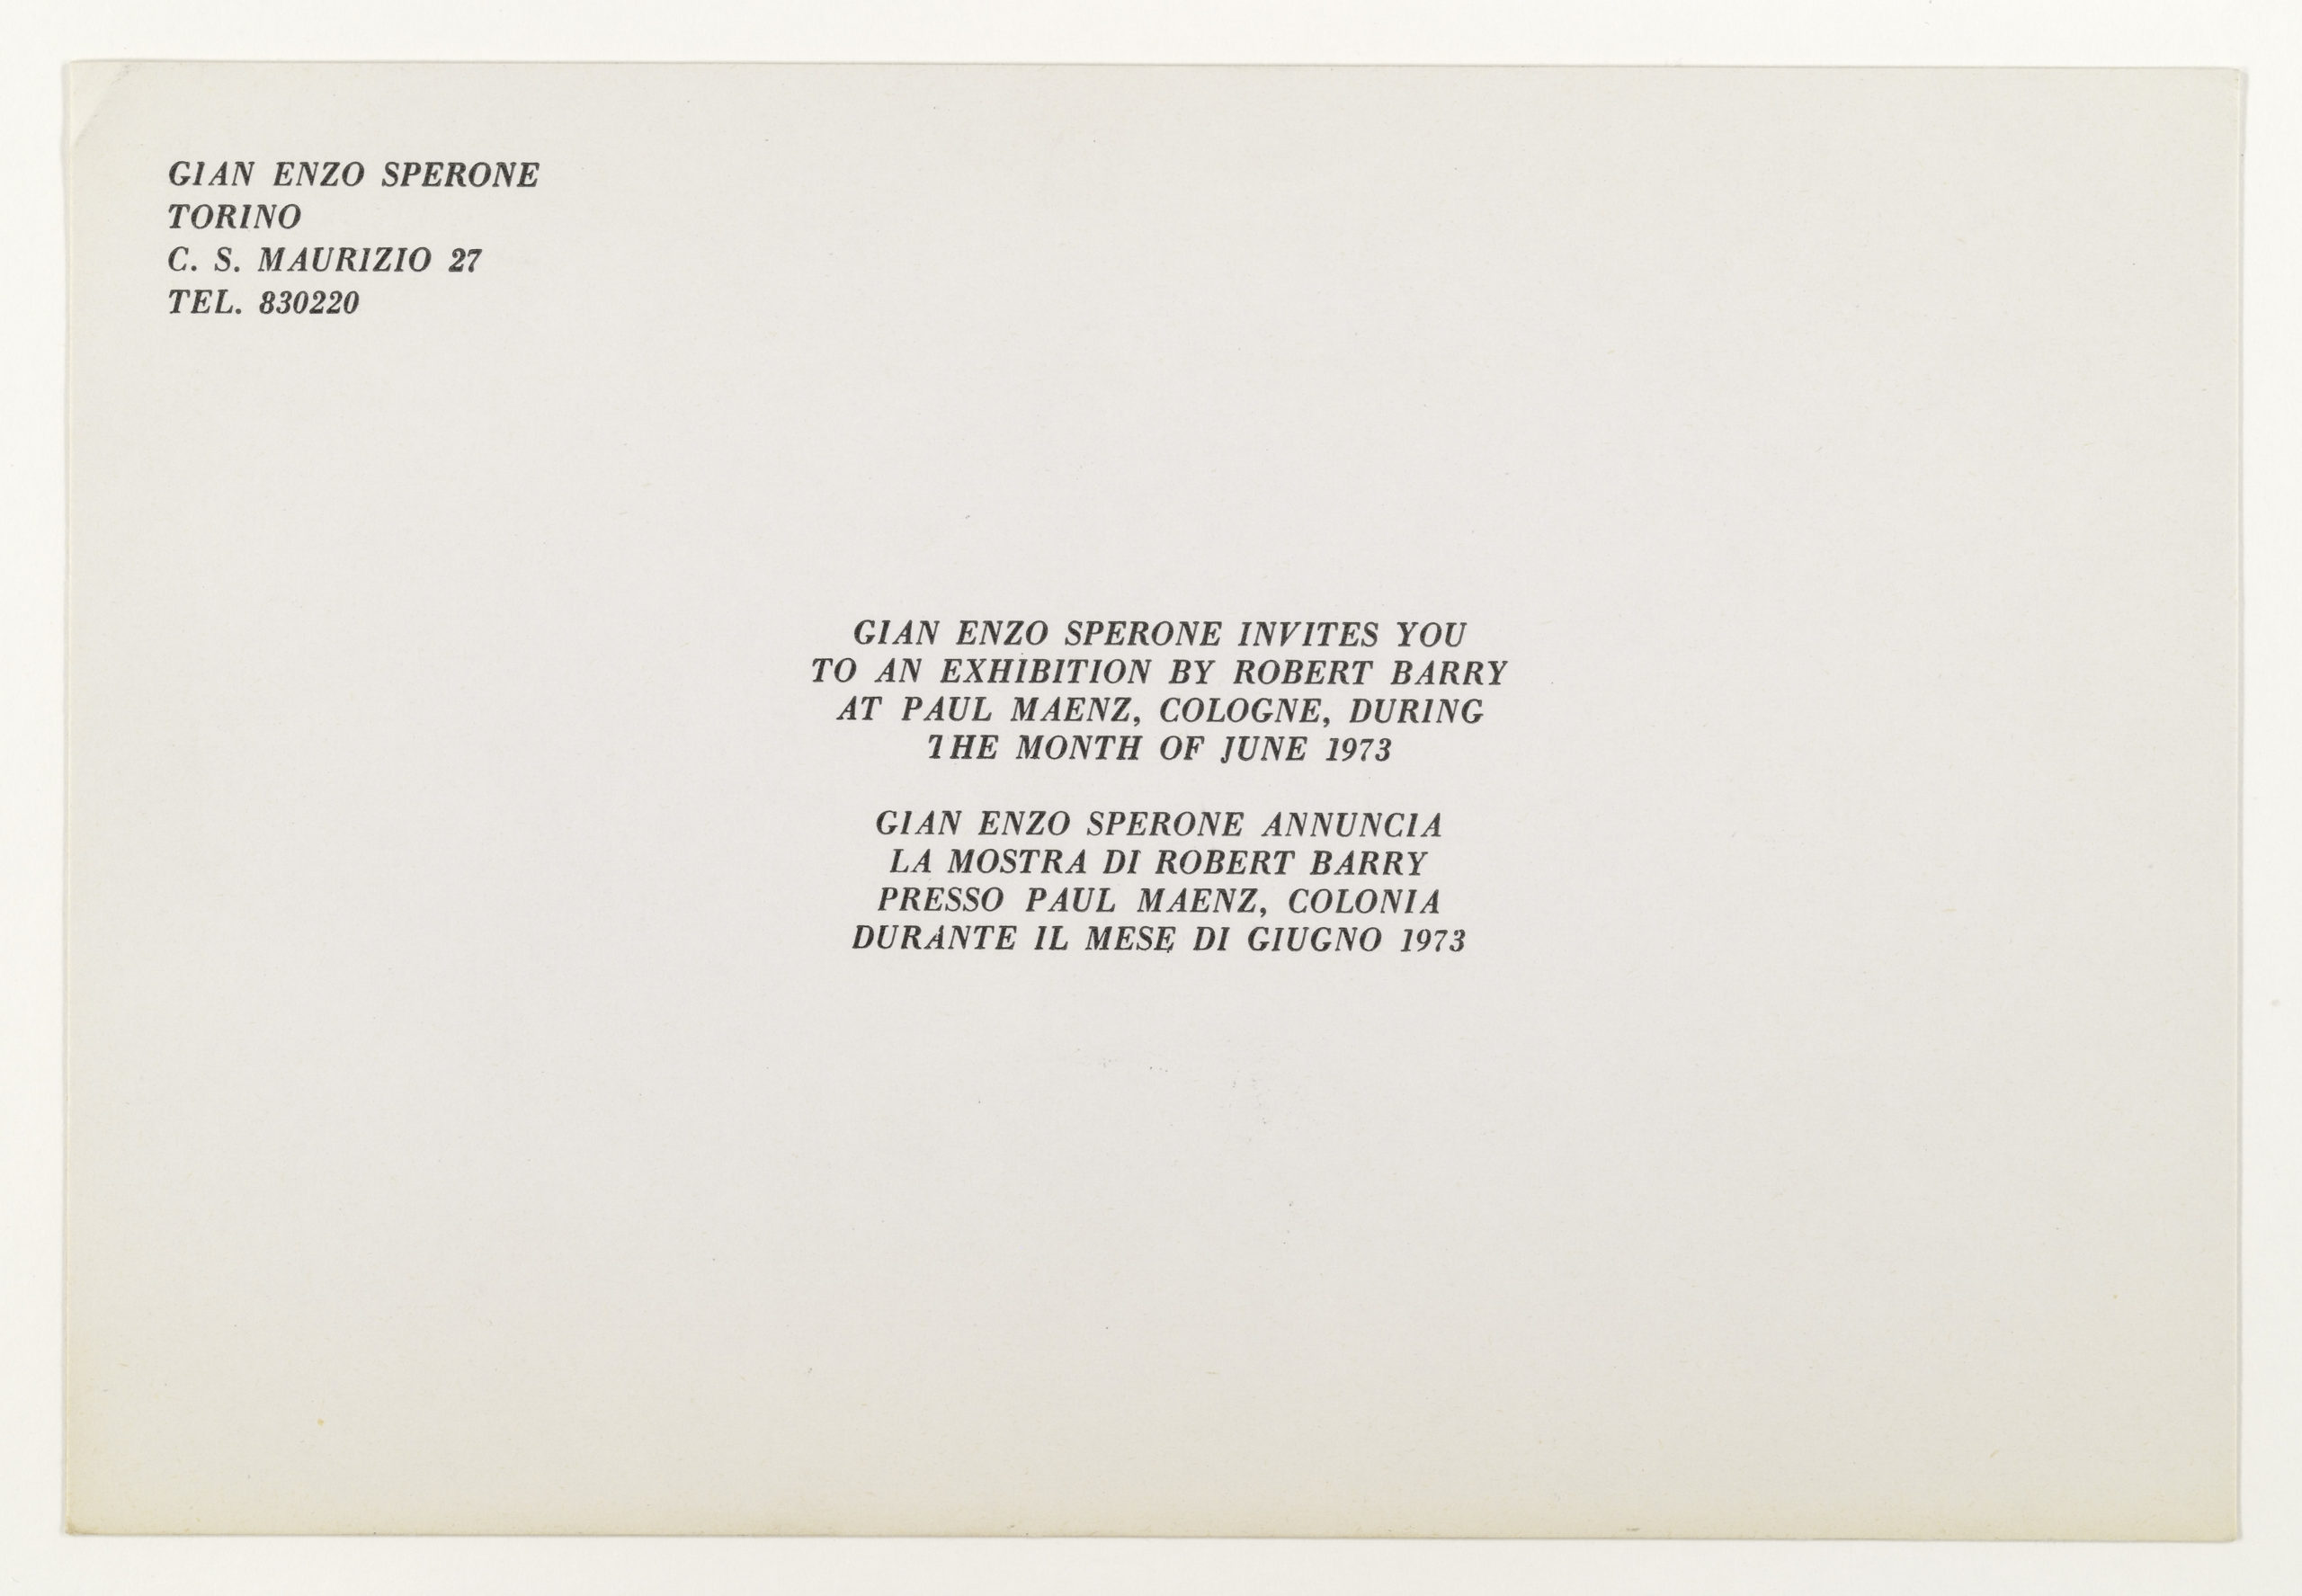 Robert Barry, Invitation Project, Galleria Sperone, Turino invites to Paul Maenz, Cologne, June 1973 (Invitation); Sammlung Marzona, Kunstbibliothek – Staatliche Museen zu Berlin